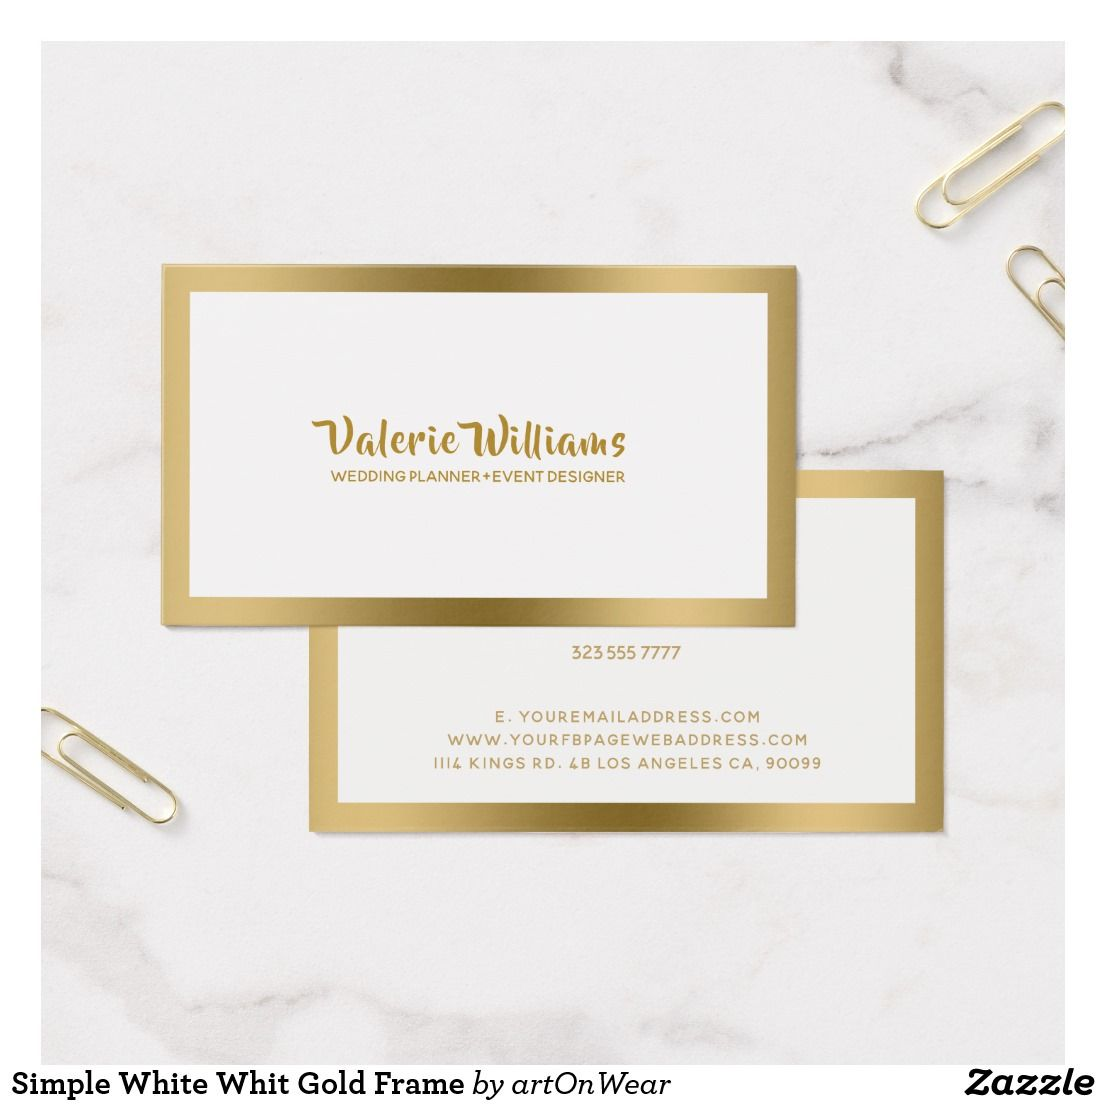 Simple White Whit Gold Frame Business Card